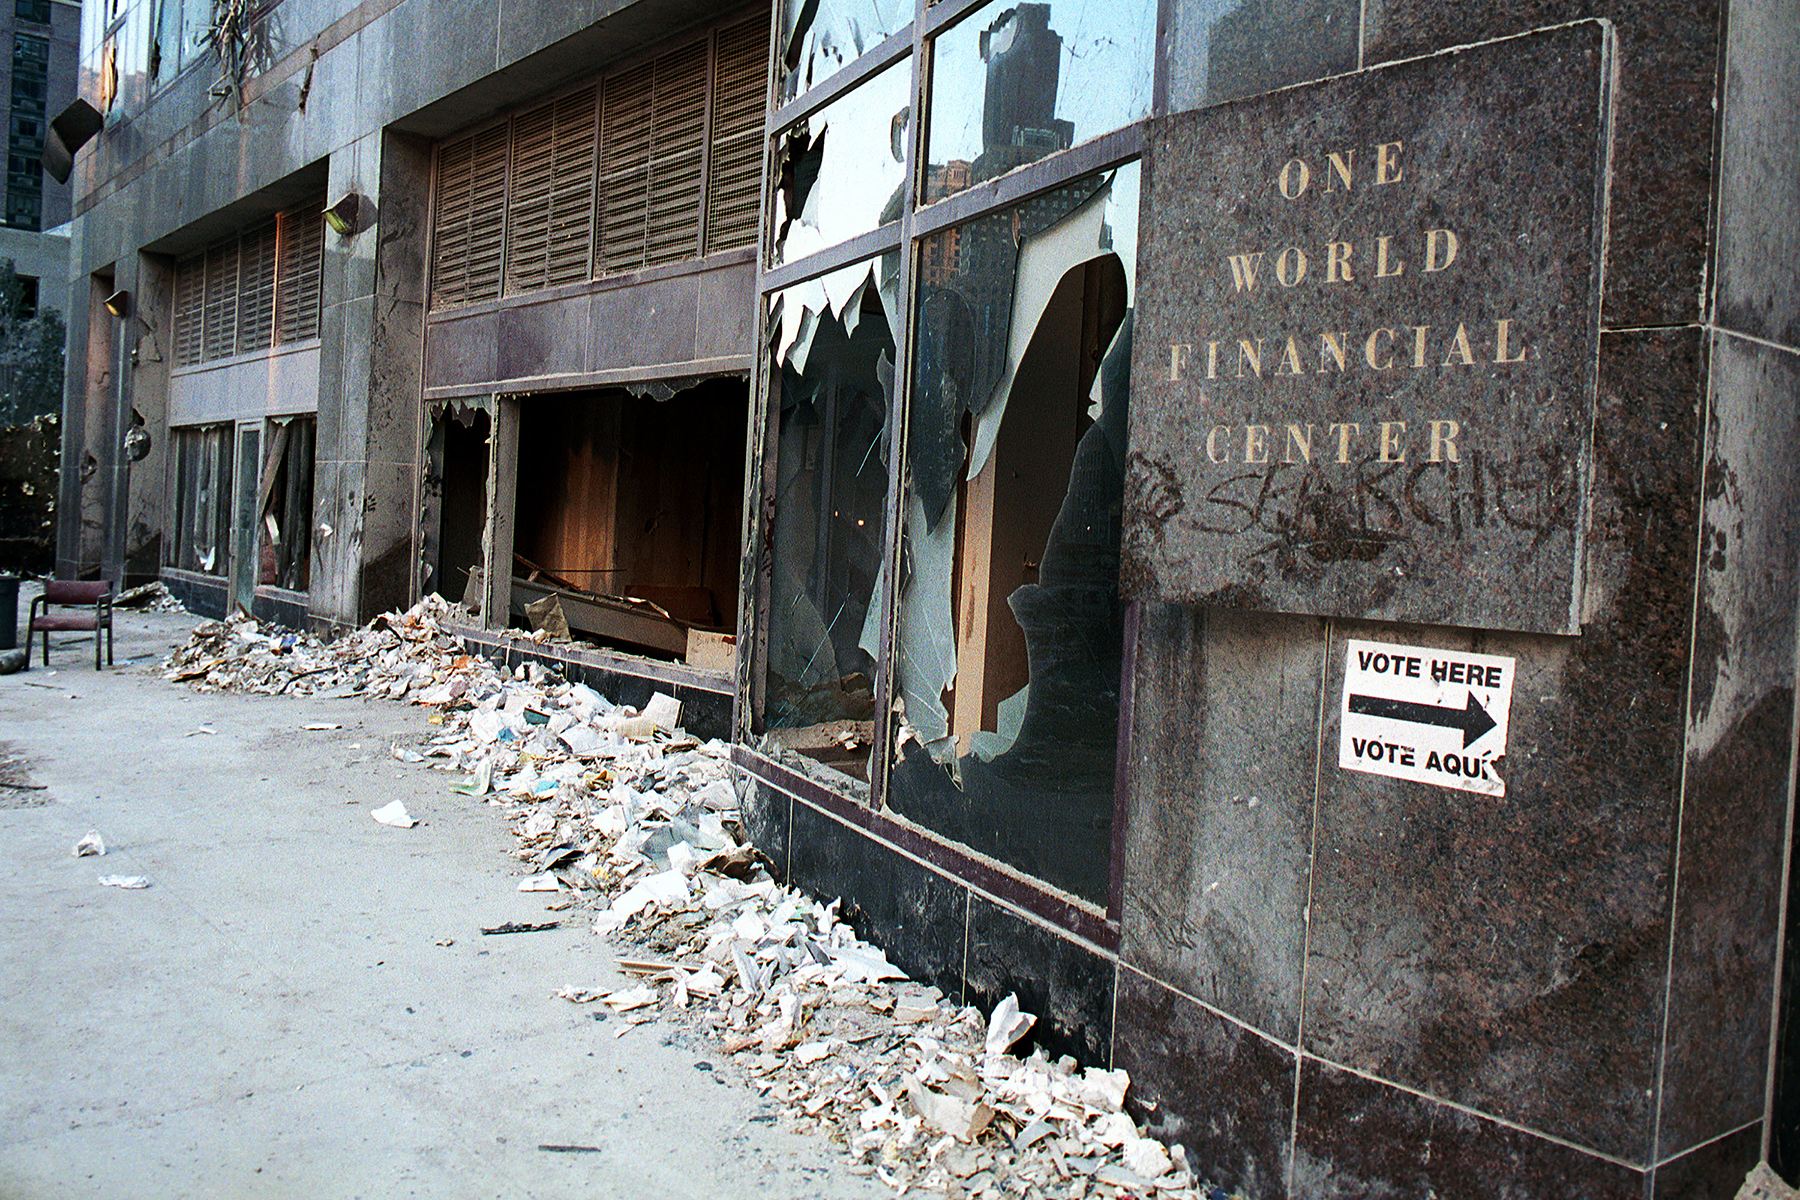 """394375 18: The destroyed front of One World Financial Center sports a """"Vote Here"""" sign across from the site of the World Trade Center September 13, 2001 in New York City, two days after the twin towers were destroyed when hit by two hijacked passenger jets. (Photo by Chris Hondros/Getty Images)"""